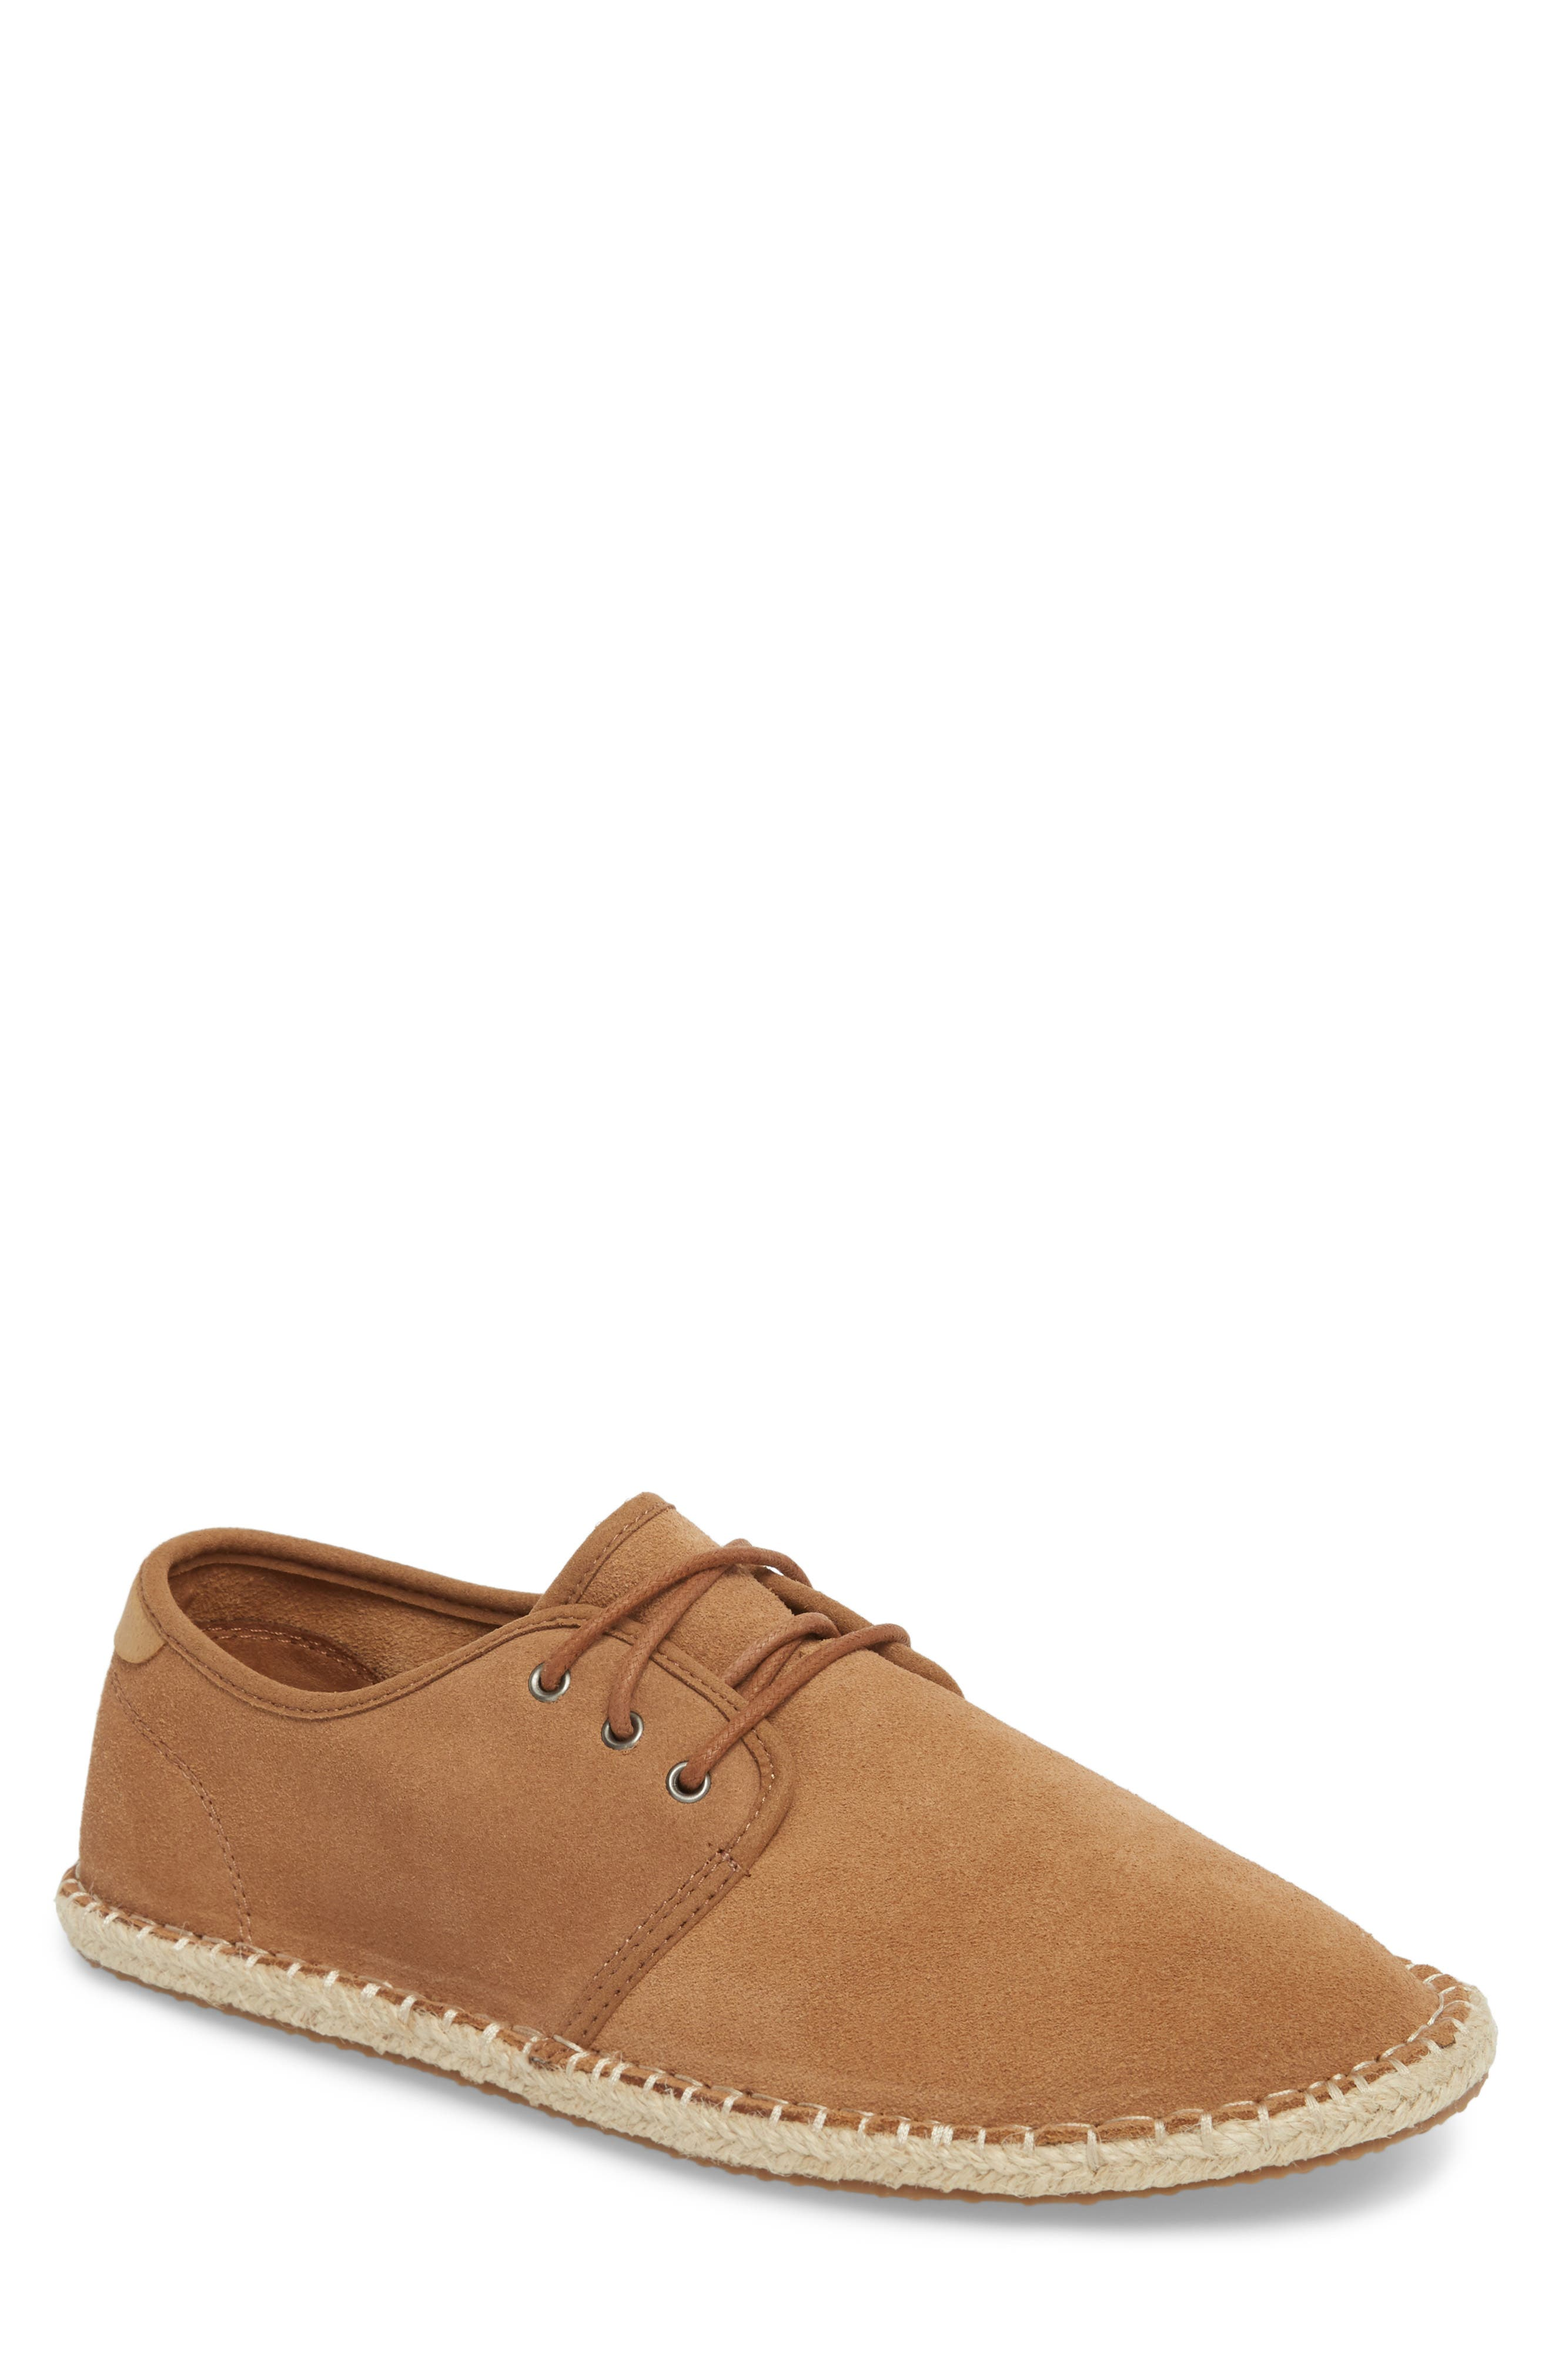 Diego Deconstructed Derby,                         Main,                         color, Toffee Suede